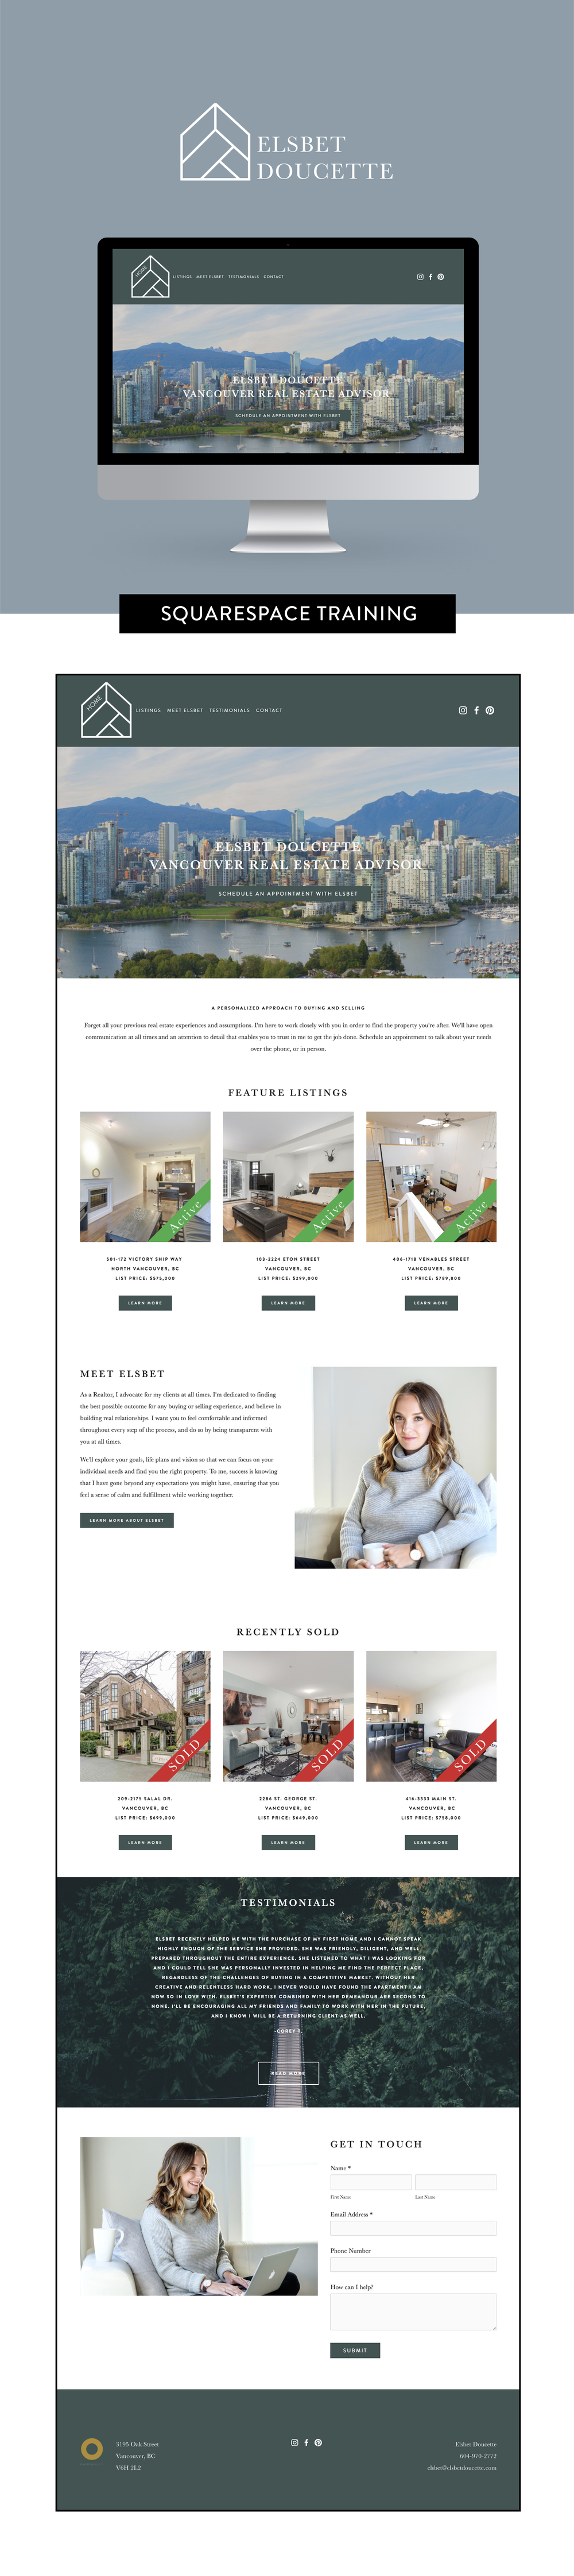 Squarespace design and training for Elsbet Doucette Real Estate Advisor by Salt Design Co. in Vancouver BC